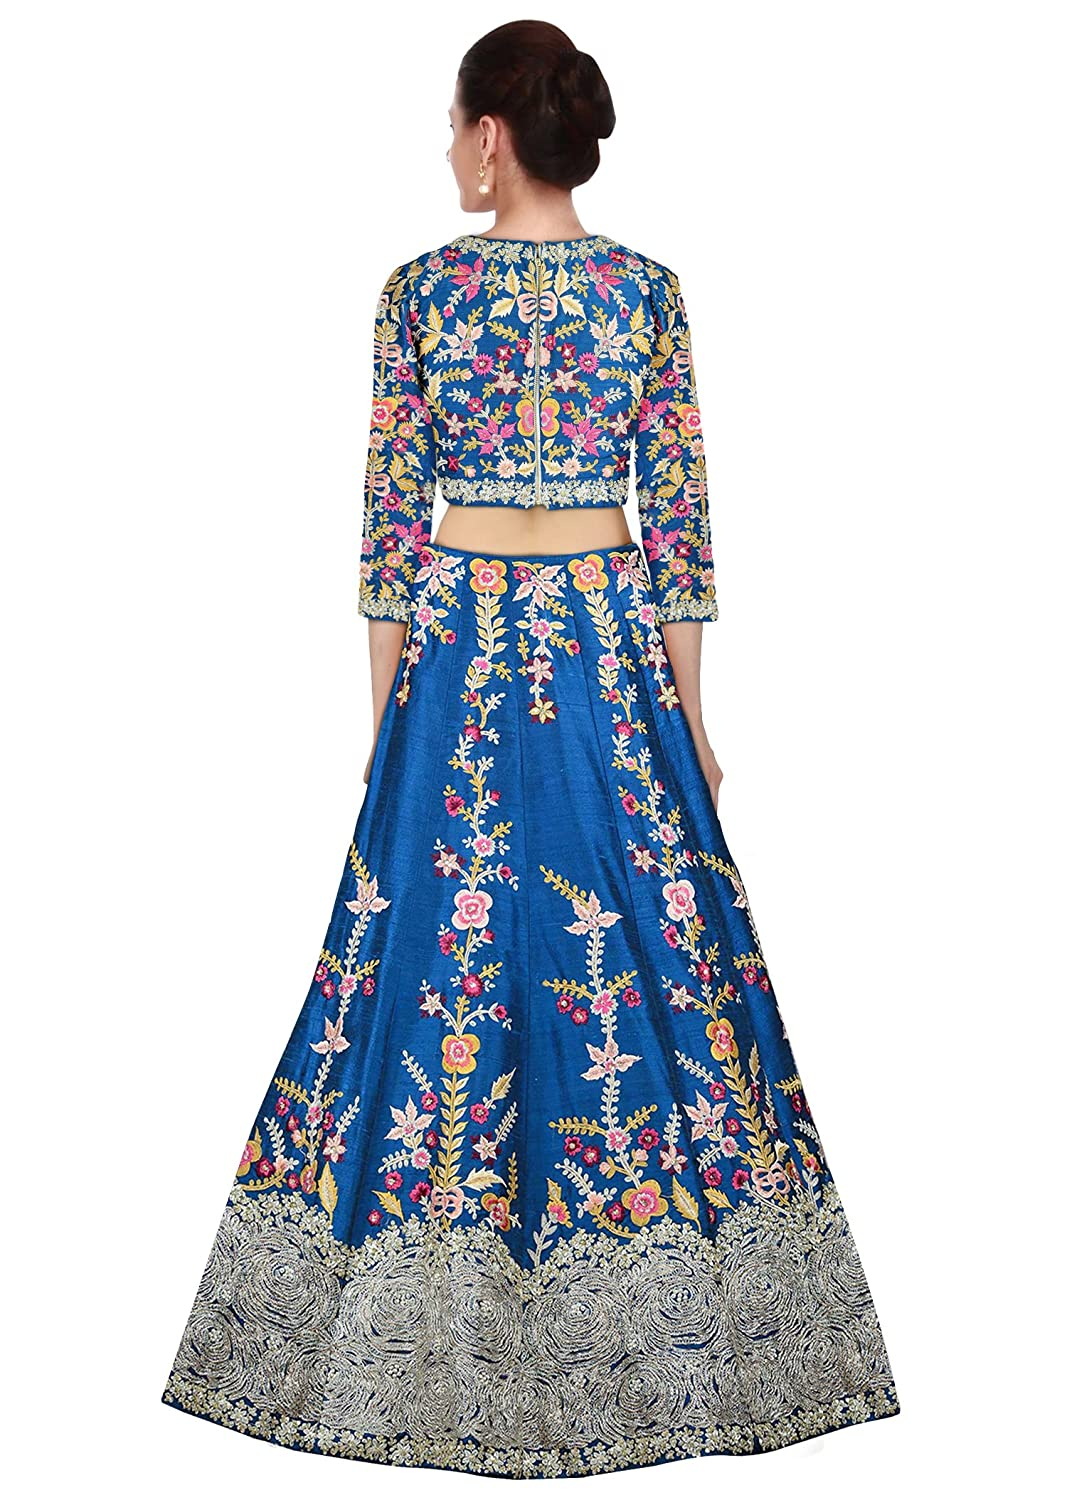 a1e173cbfa Rozy Fashion Yale Blue Raw Silk Resham Embroidered Semi Stitched Lehenga  Choli Material With Net Dupatta: Amazon.in: Clothing & Accessories